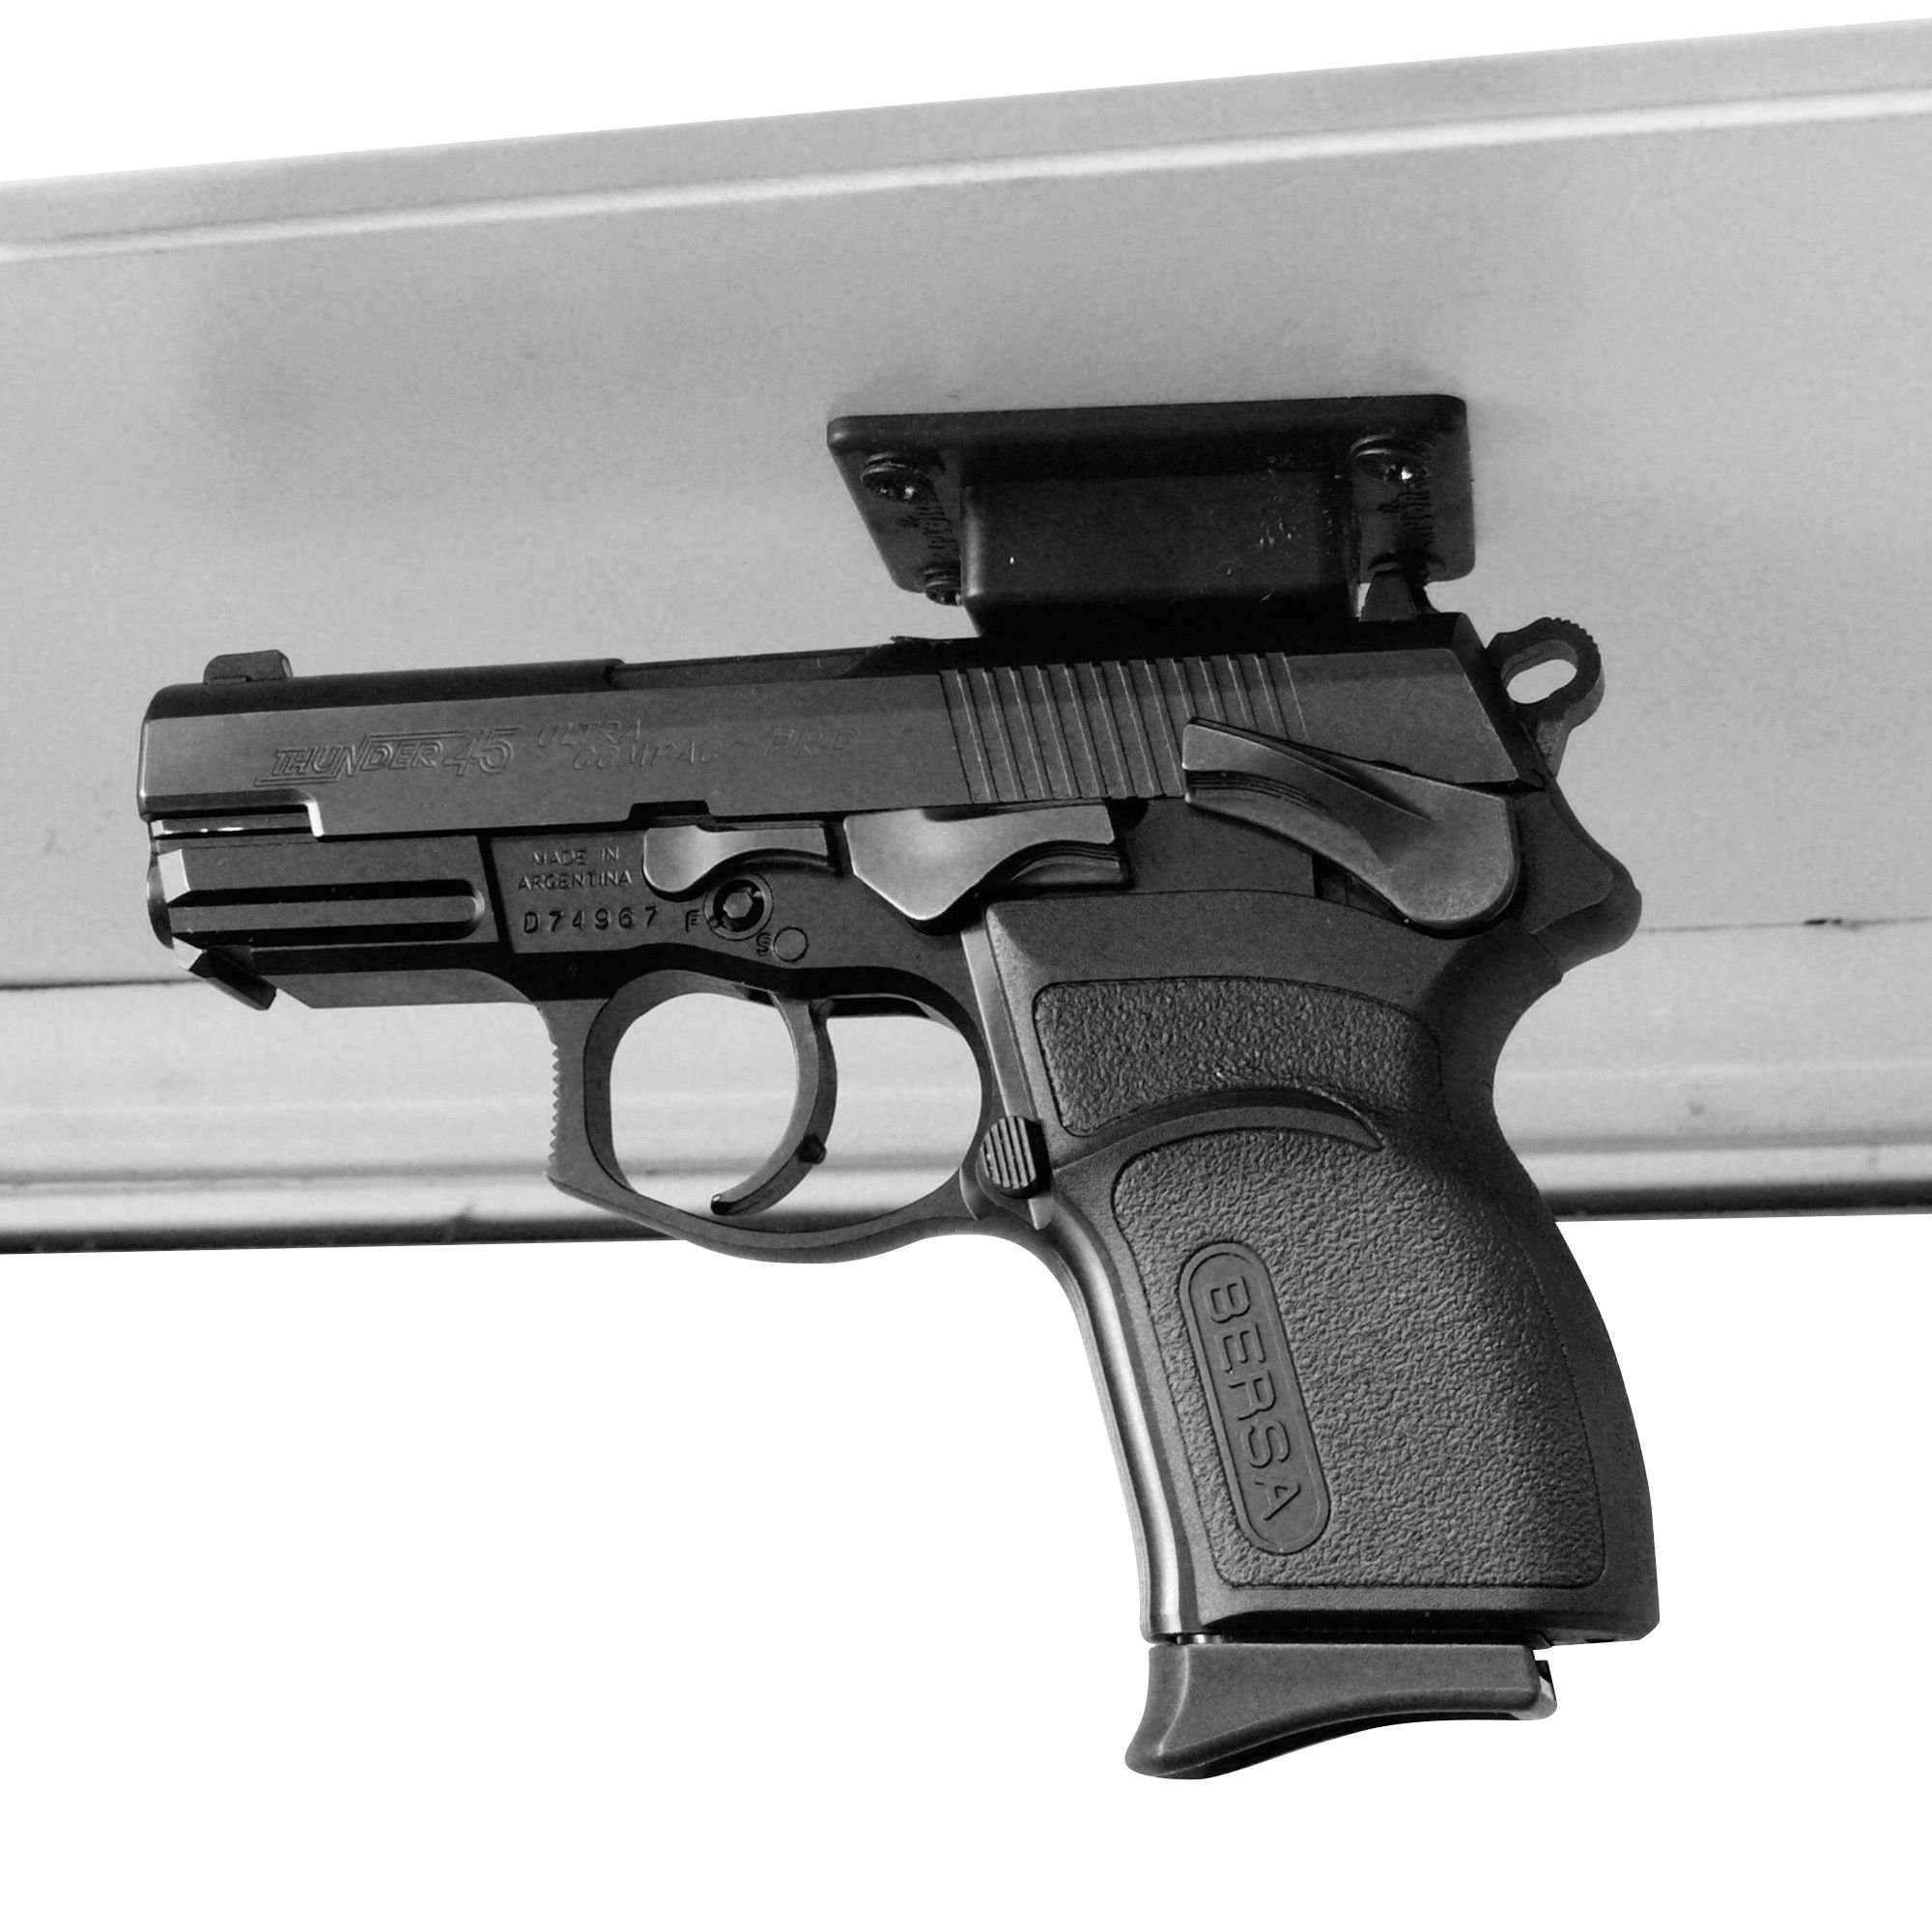 Quick Draw Gun Magnet Hold Handgun Under Counter Or Shelf